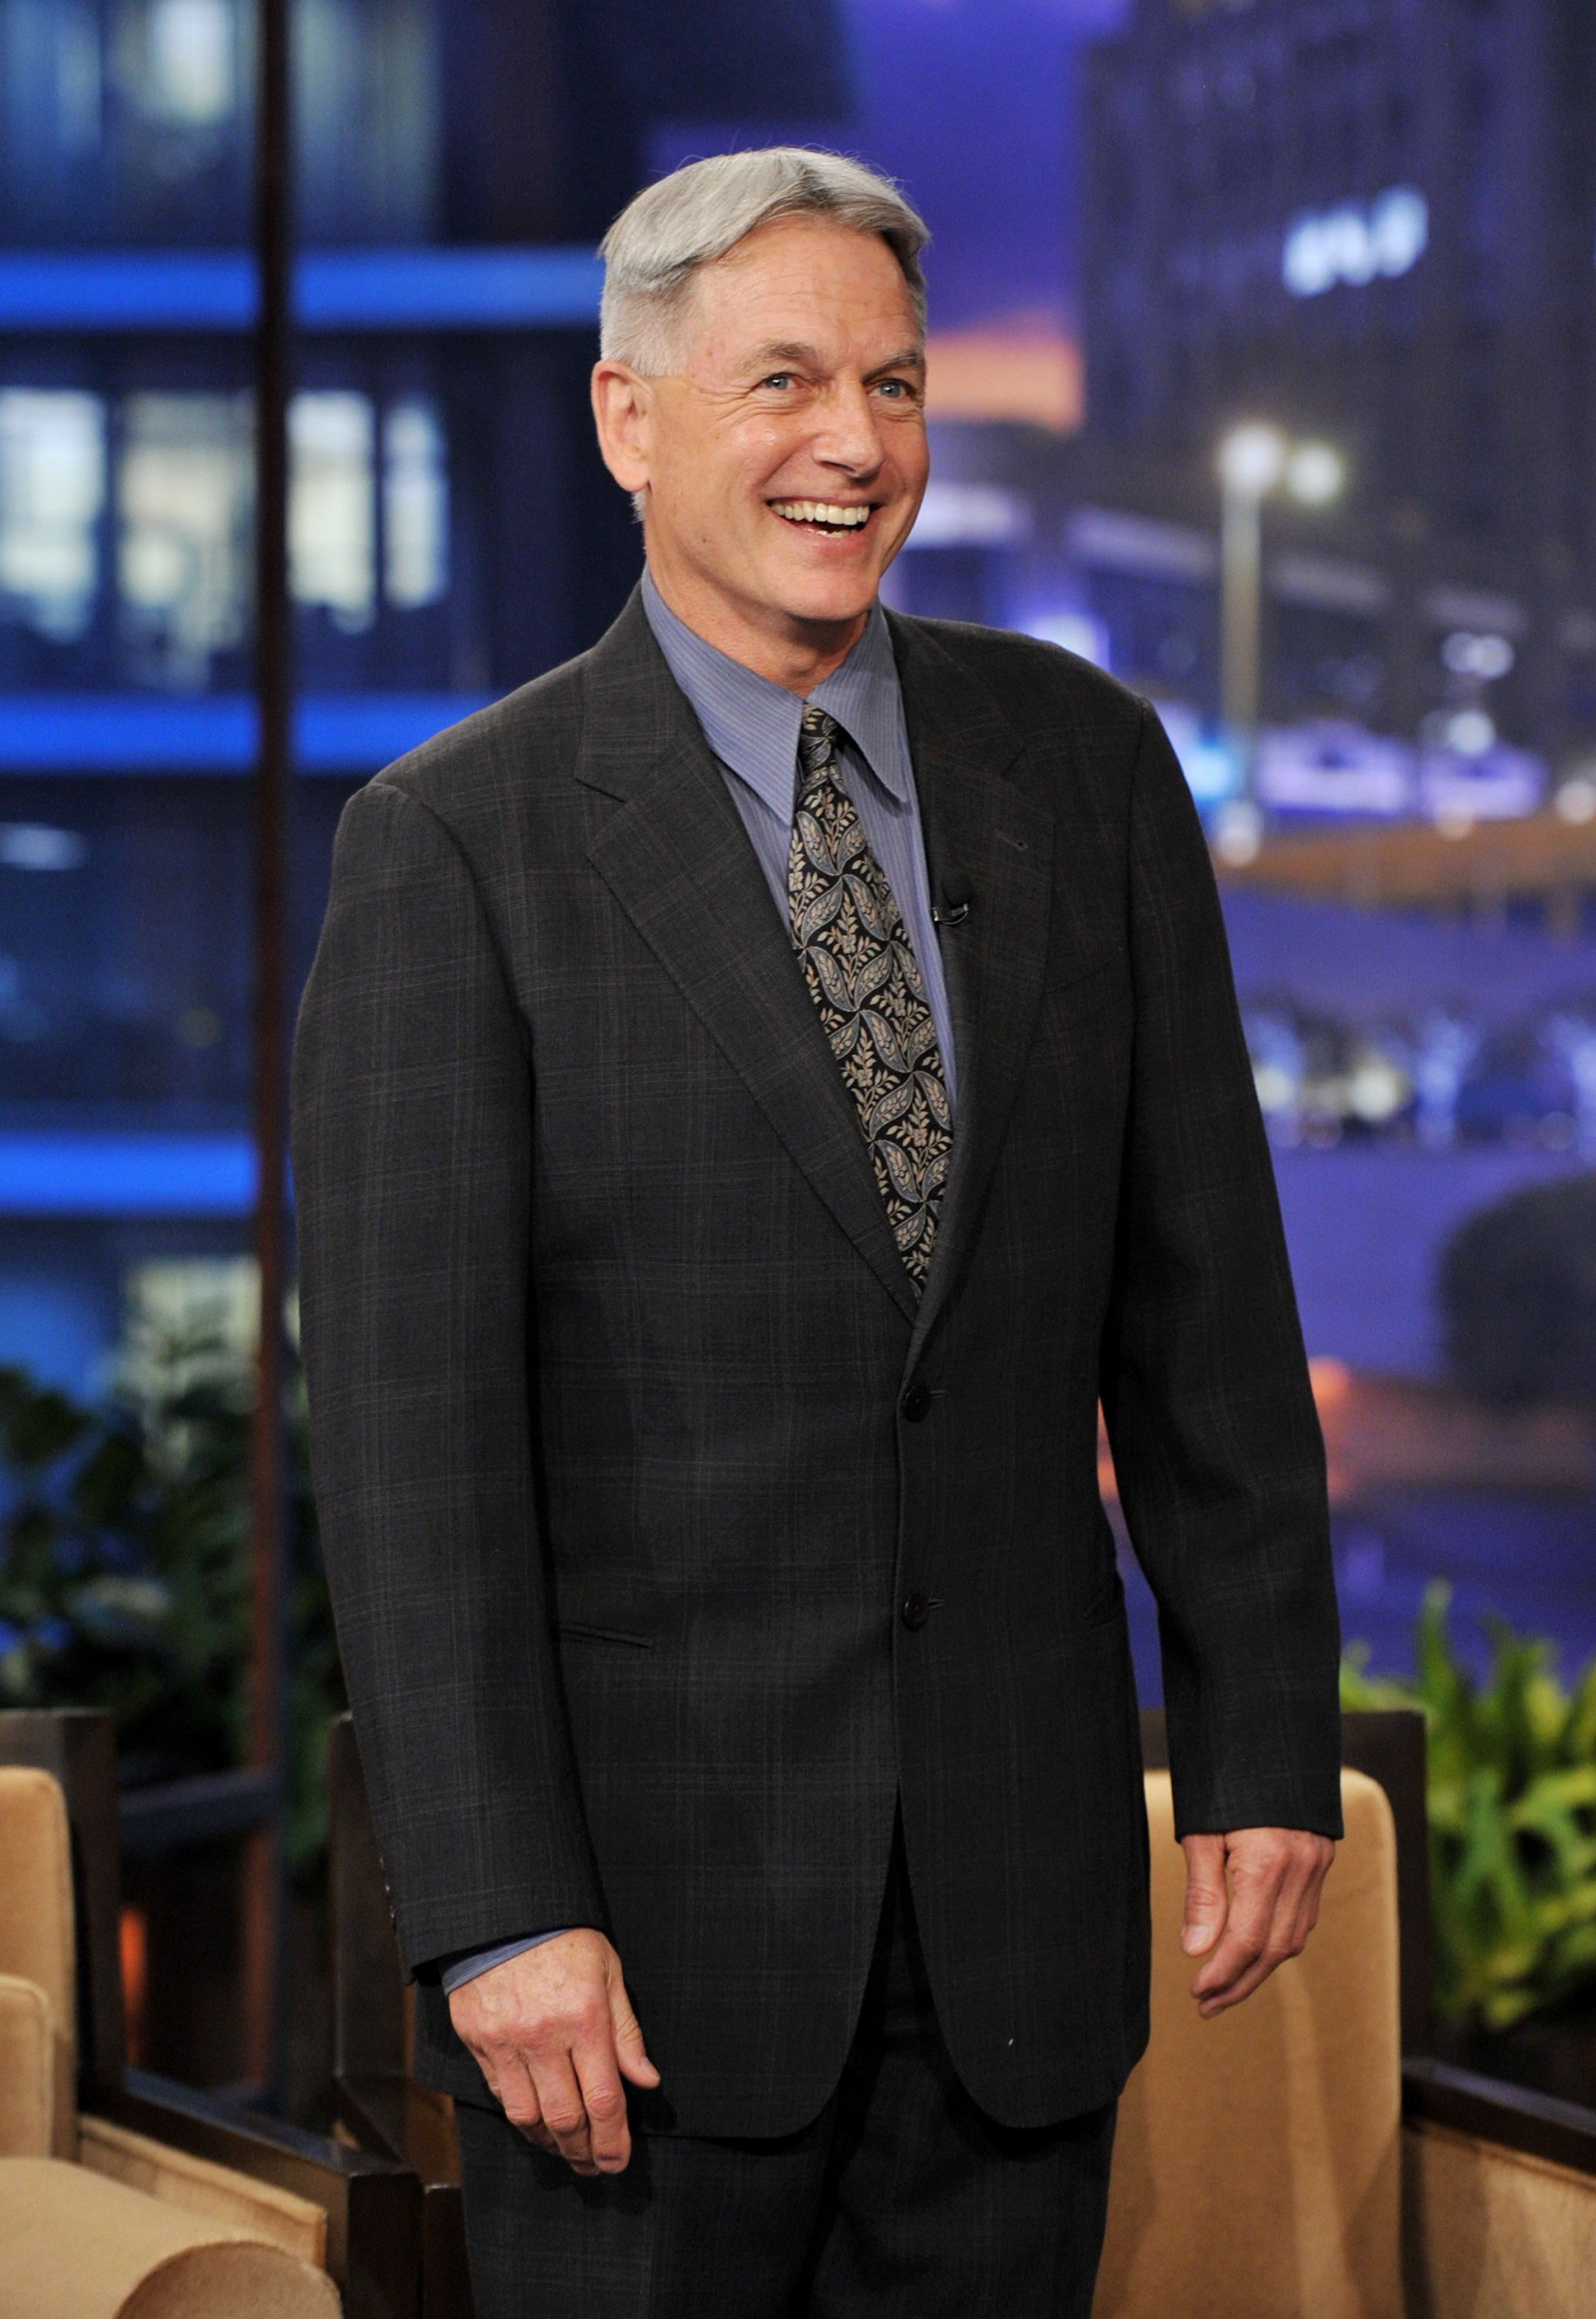 Mark Harmon appears on the Tonight Show With Jay Leno at NBC Studios on January 31, 2012 in Burbank, California. | Source: Getty Images